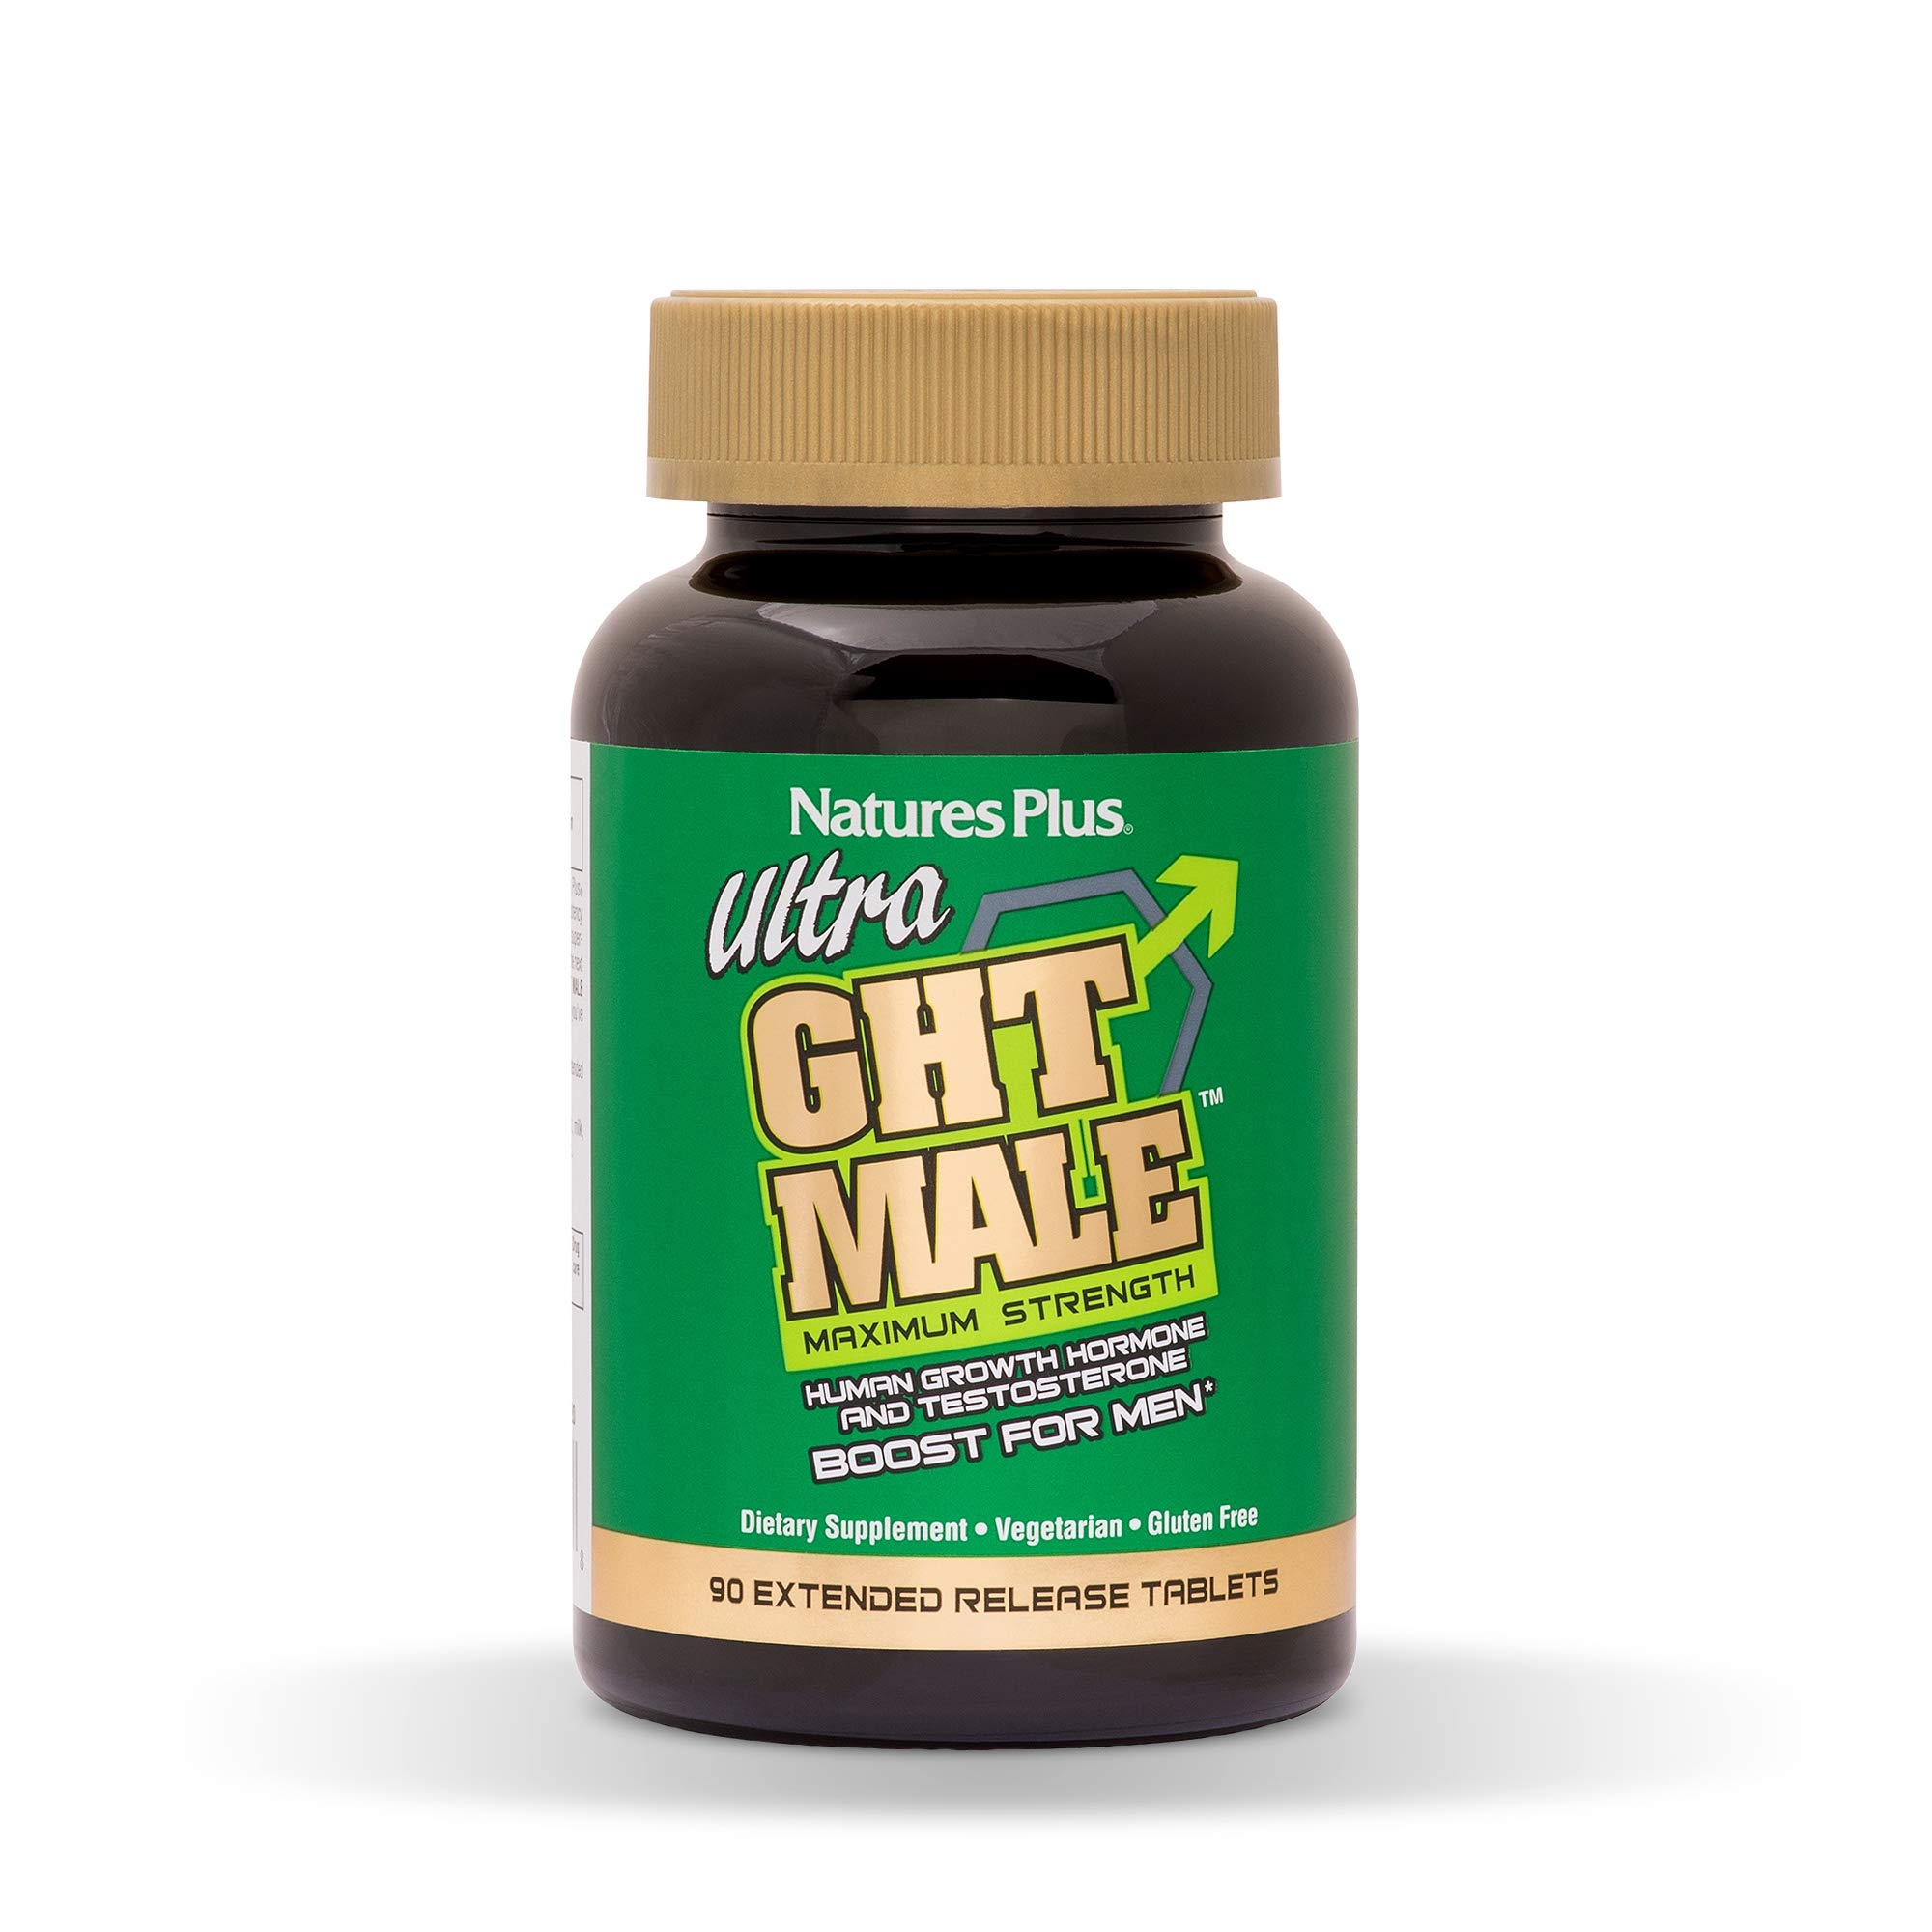 Nature's Plus - Ultra GHT Male, 90 Extended Release Tablets